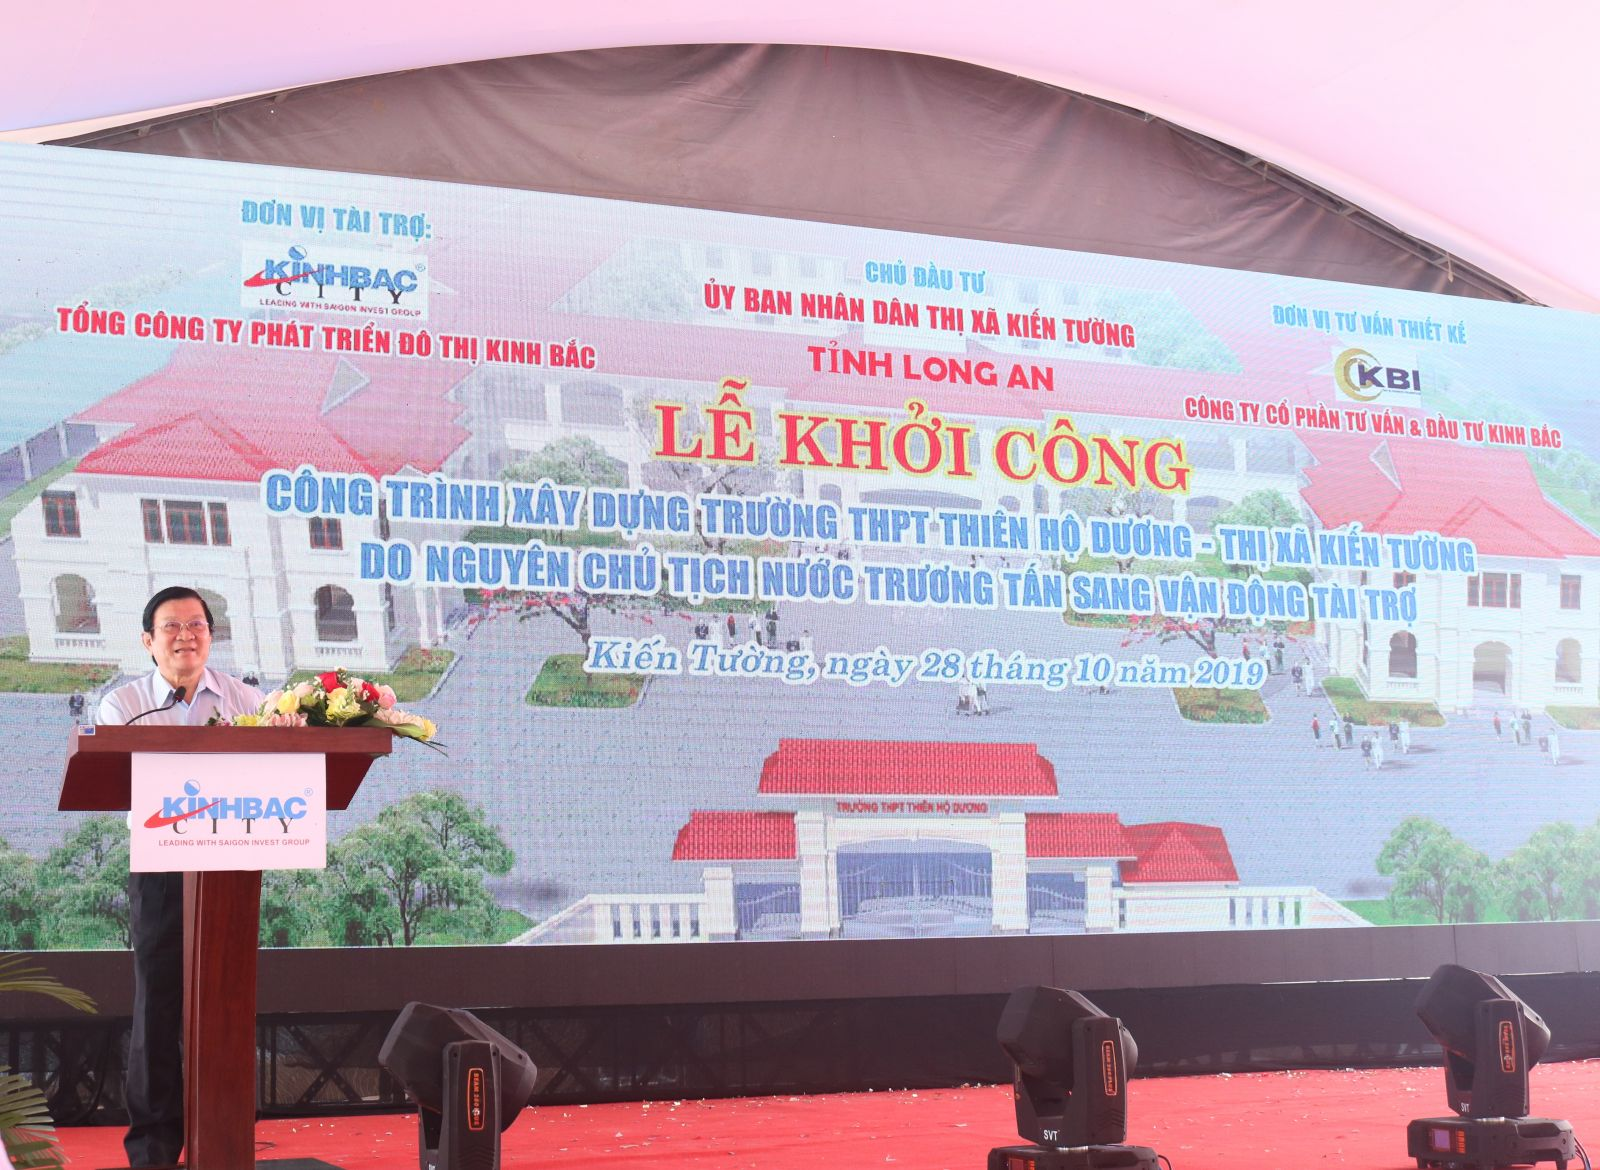 Former State President of Vietnam - Truong Tan Sang emphasized that the school will help teaching and learning to achieve better results